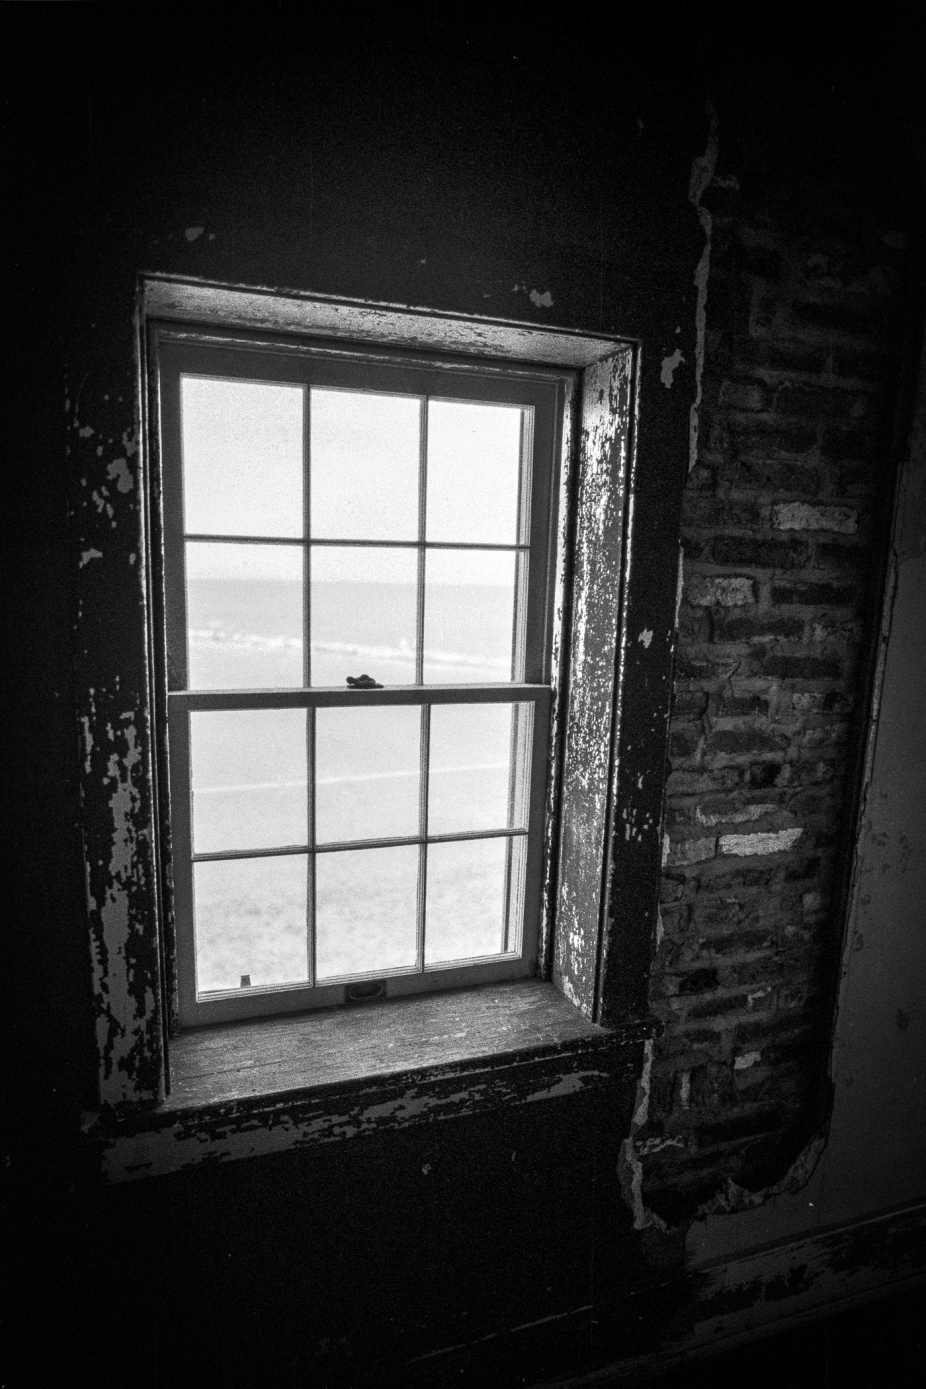 Point Lookout lighthouse window view -- Point Lookout, Maryland (June 2015)Leica M3 + Eastman Double-X (5222) + Leica Summilux 21/1.4 ASPH